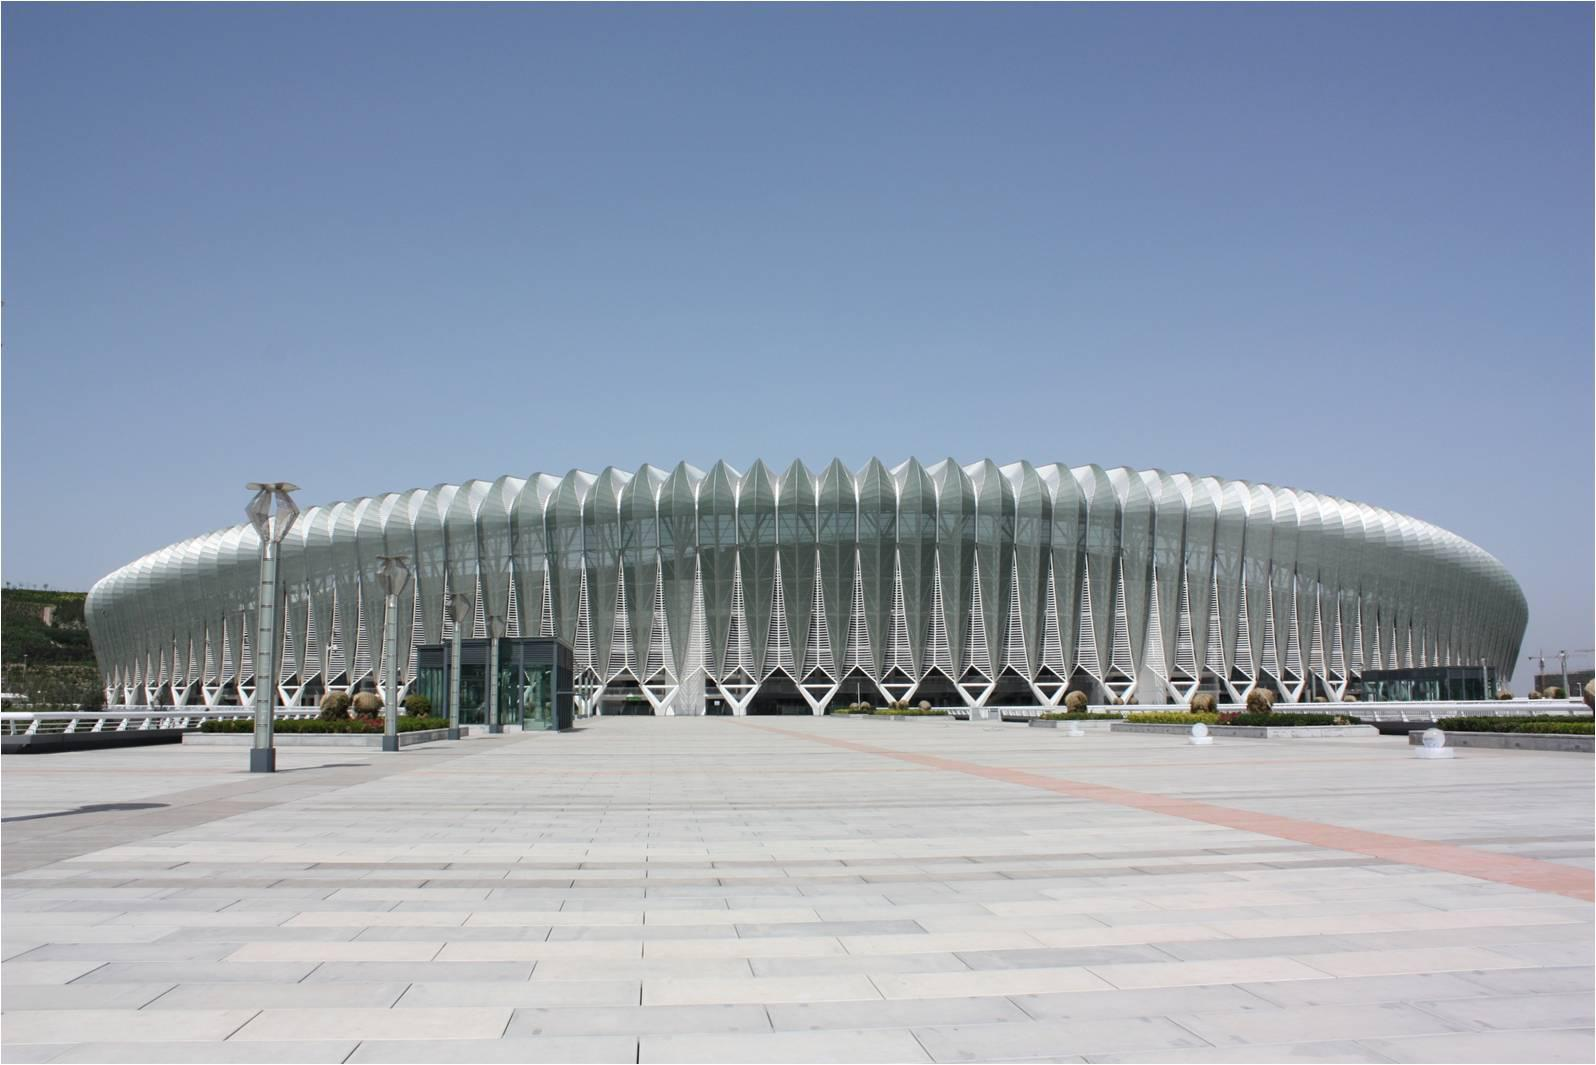 Yantai city outside the stadium